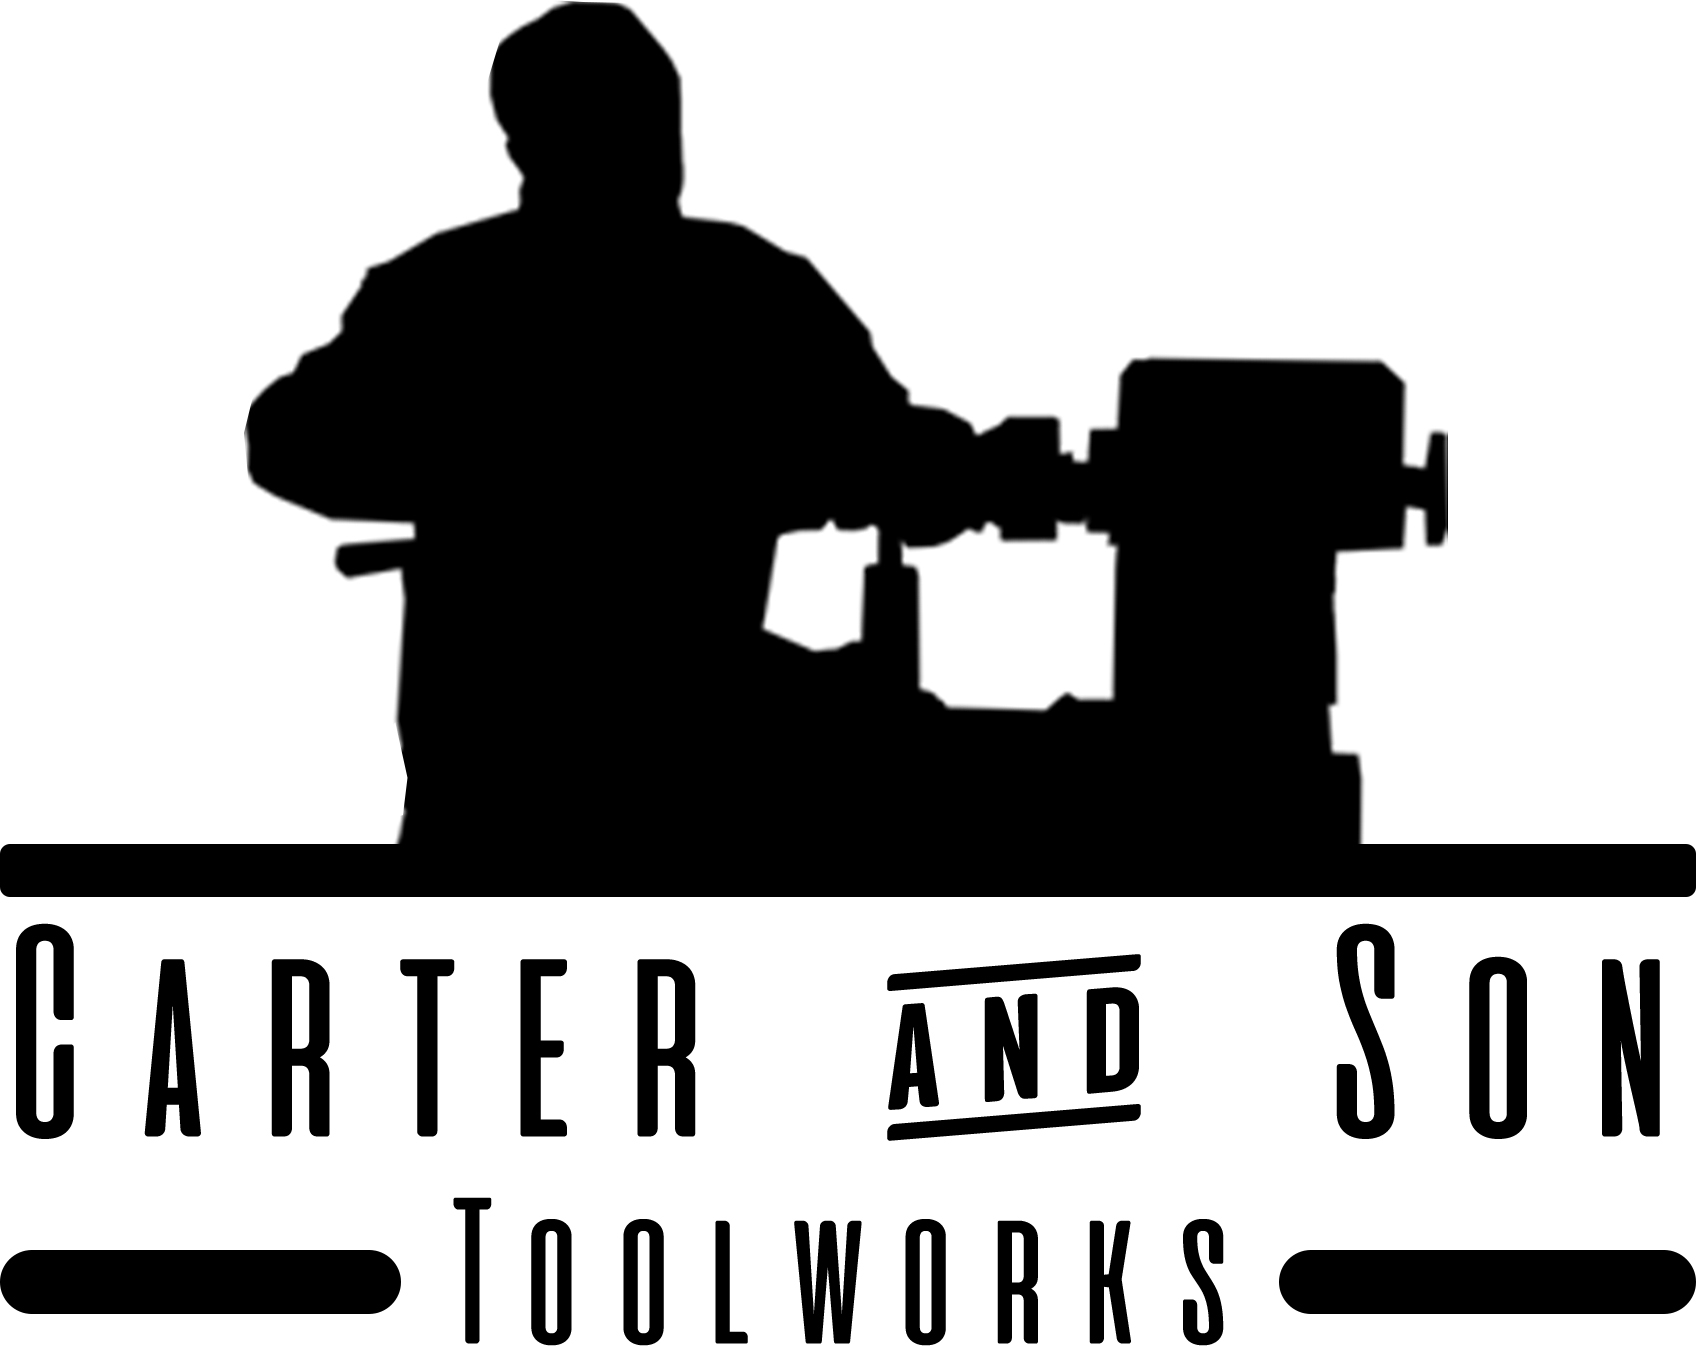 Carter and Son Toolworks